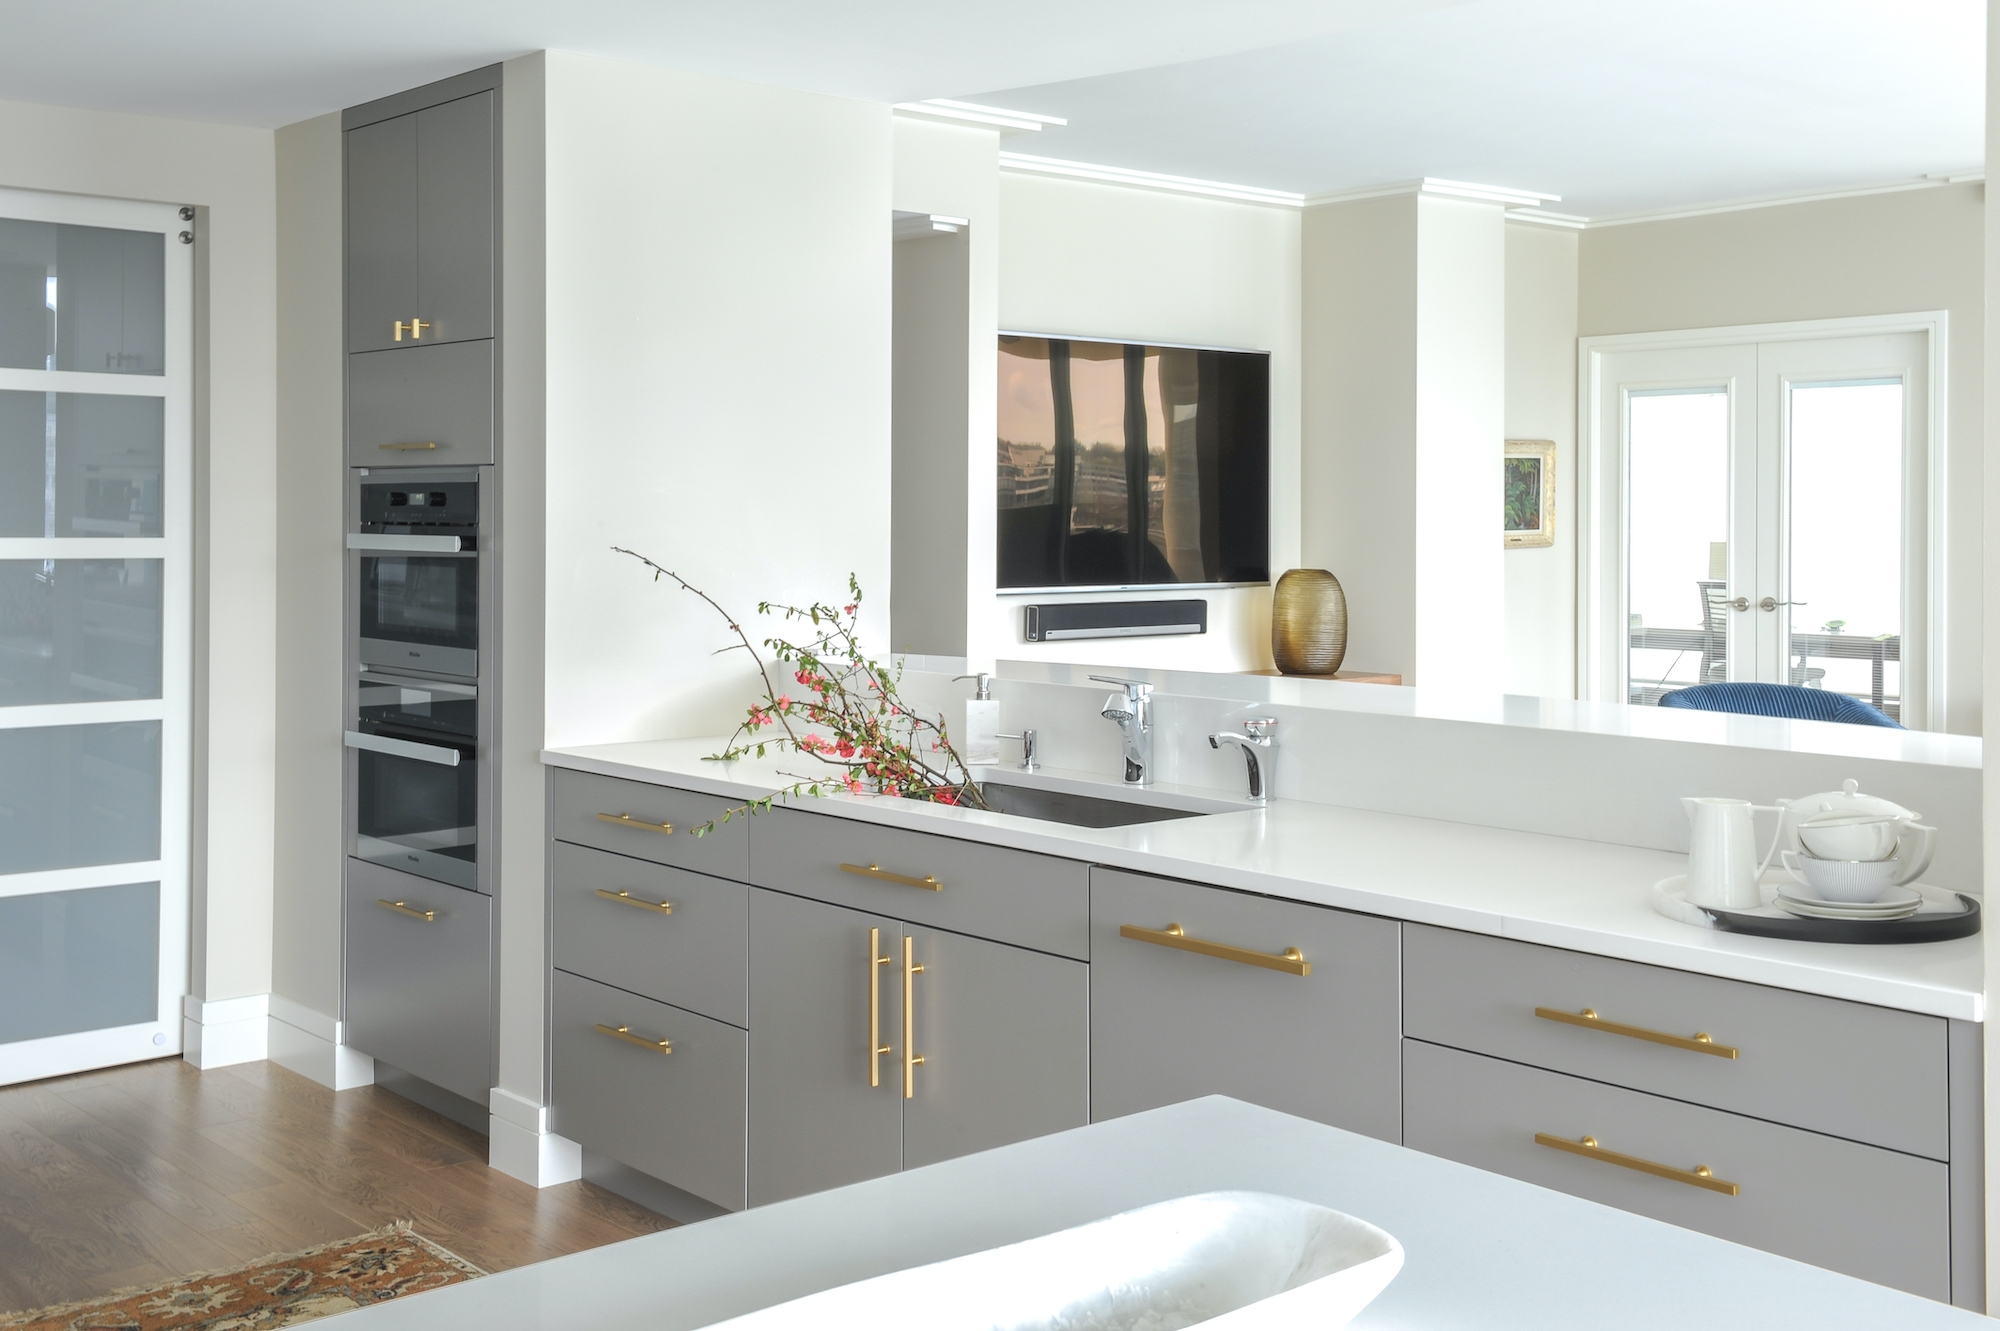 Yaletown Condo Kitchen counters